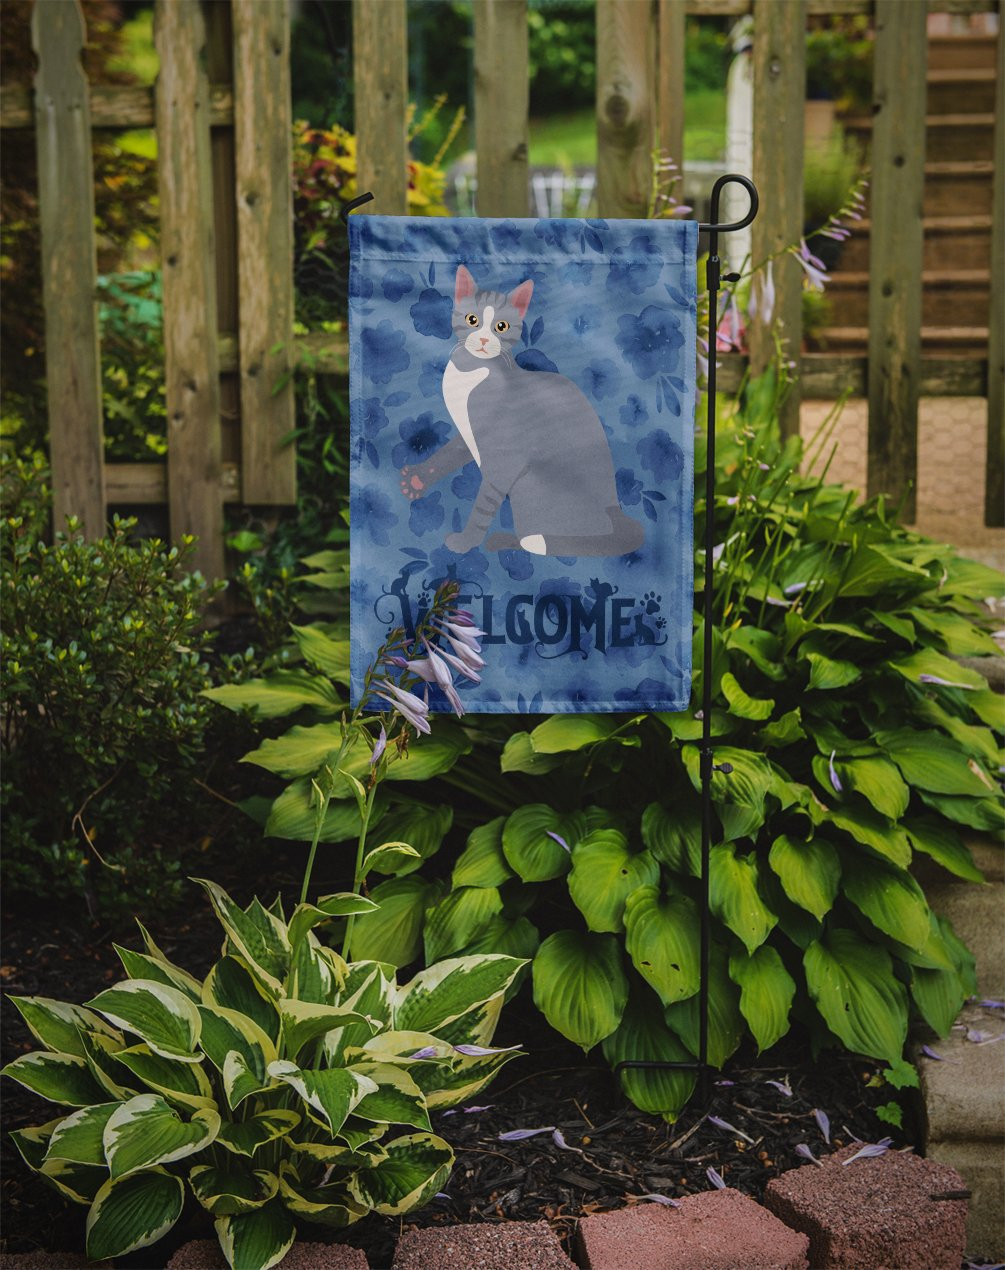 American Polydactyl #2 Cat Welcome Flag Garden Size CK5009GF by Caroline's Treasures